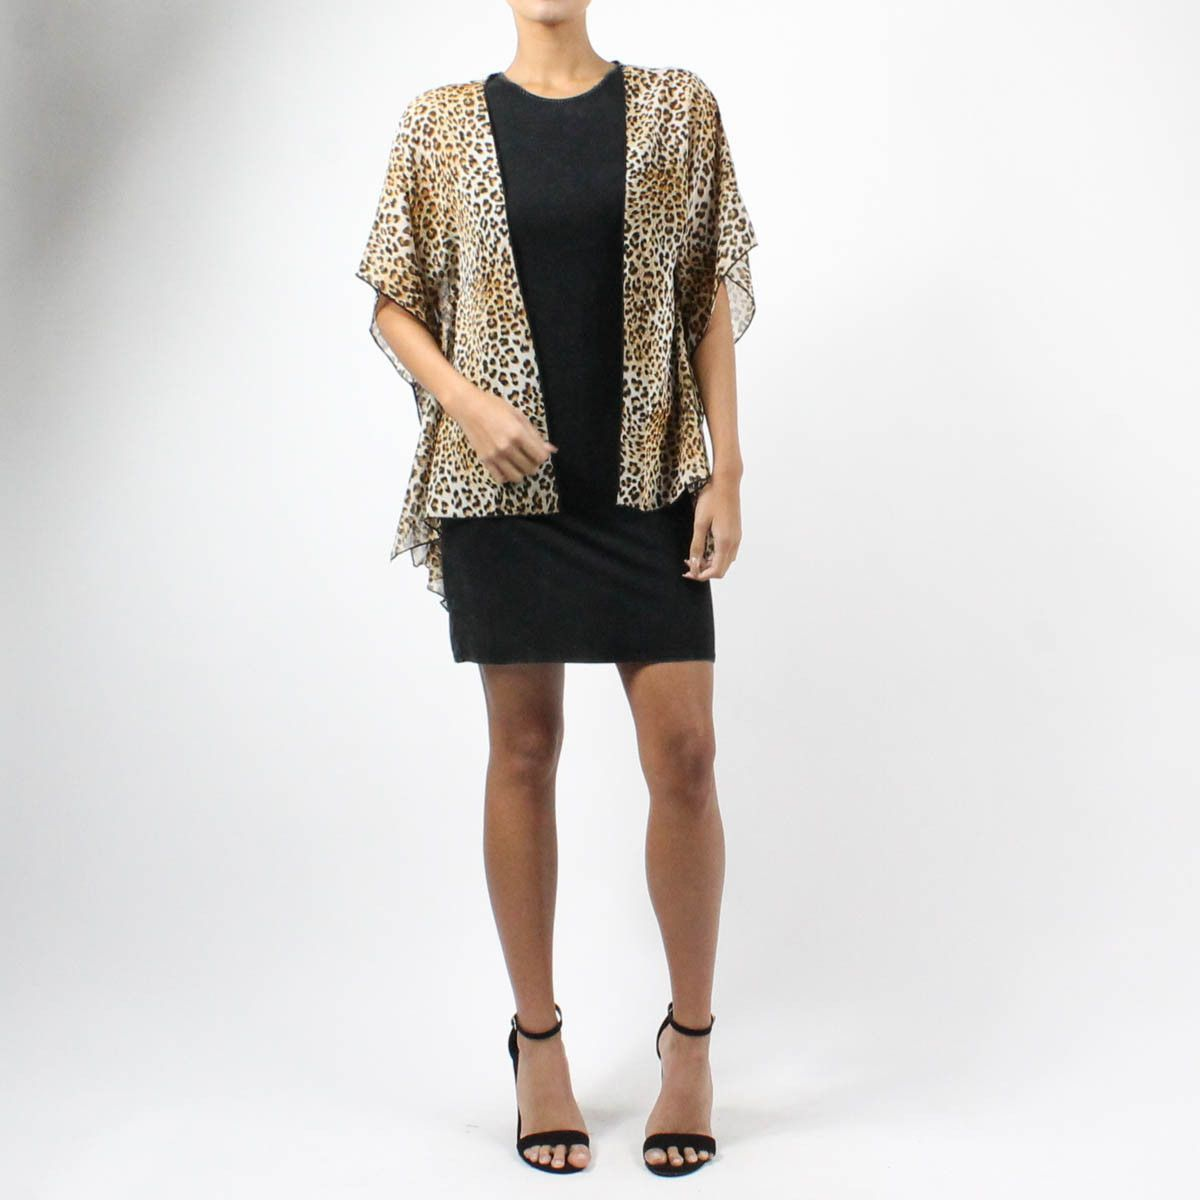 Leopard Chiffon Cardigan | Products | Pinterest | Products ...